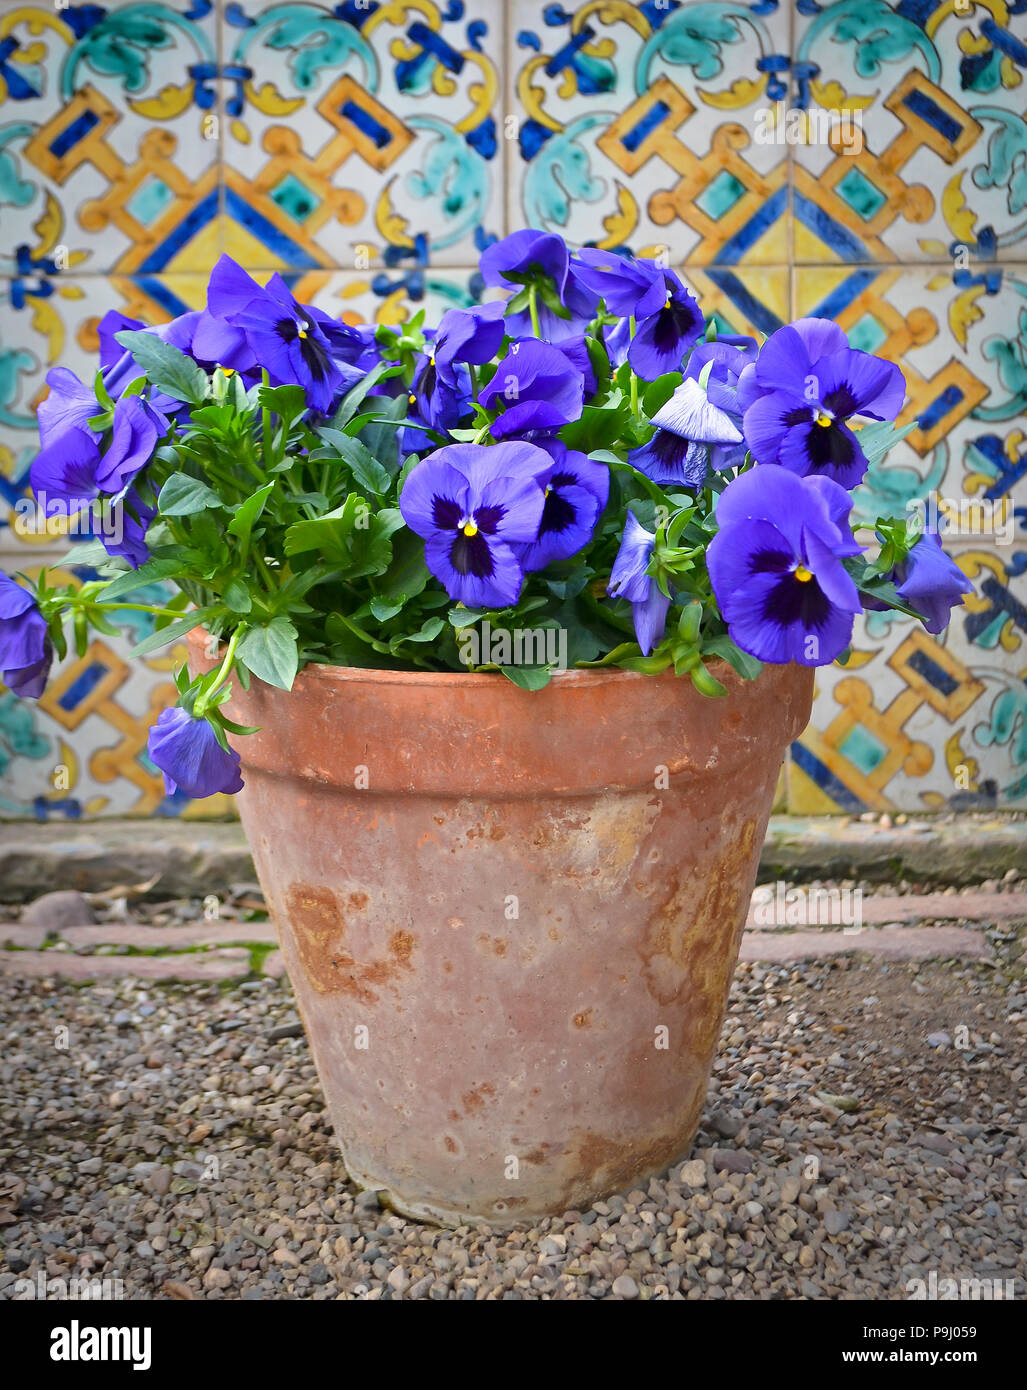 Violet blue pansy flowers in a terracotta flowerpot against colourful  Andalusian tiles in Spain Stock Photo